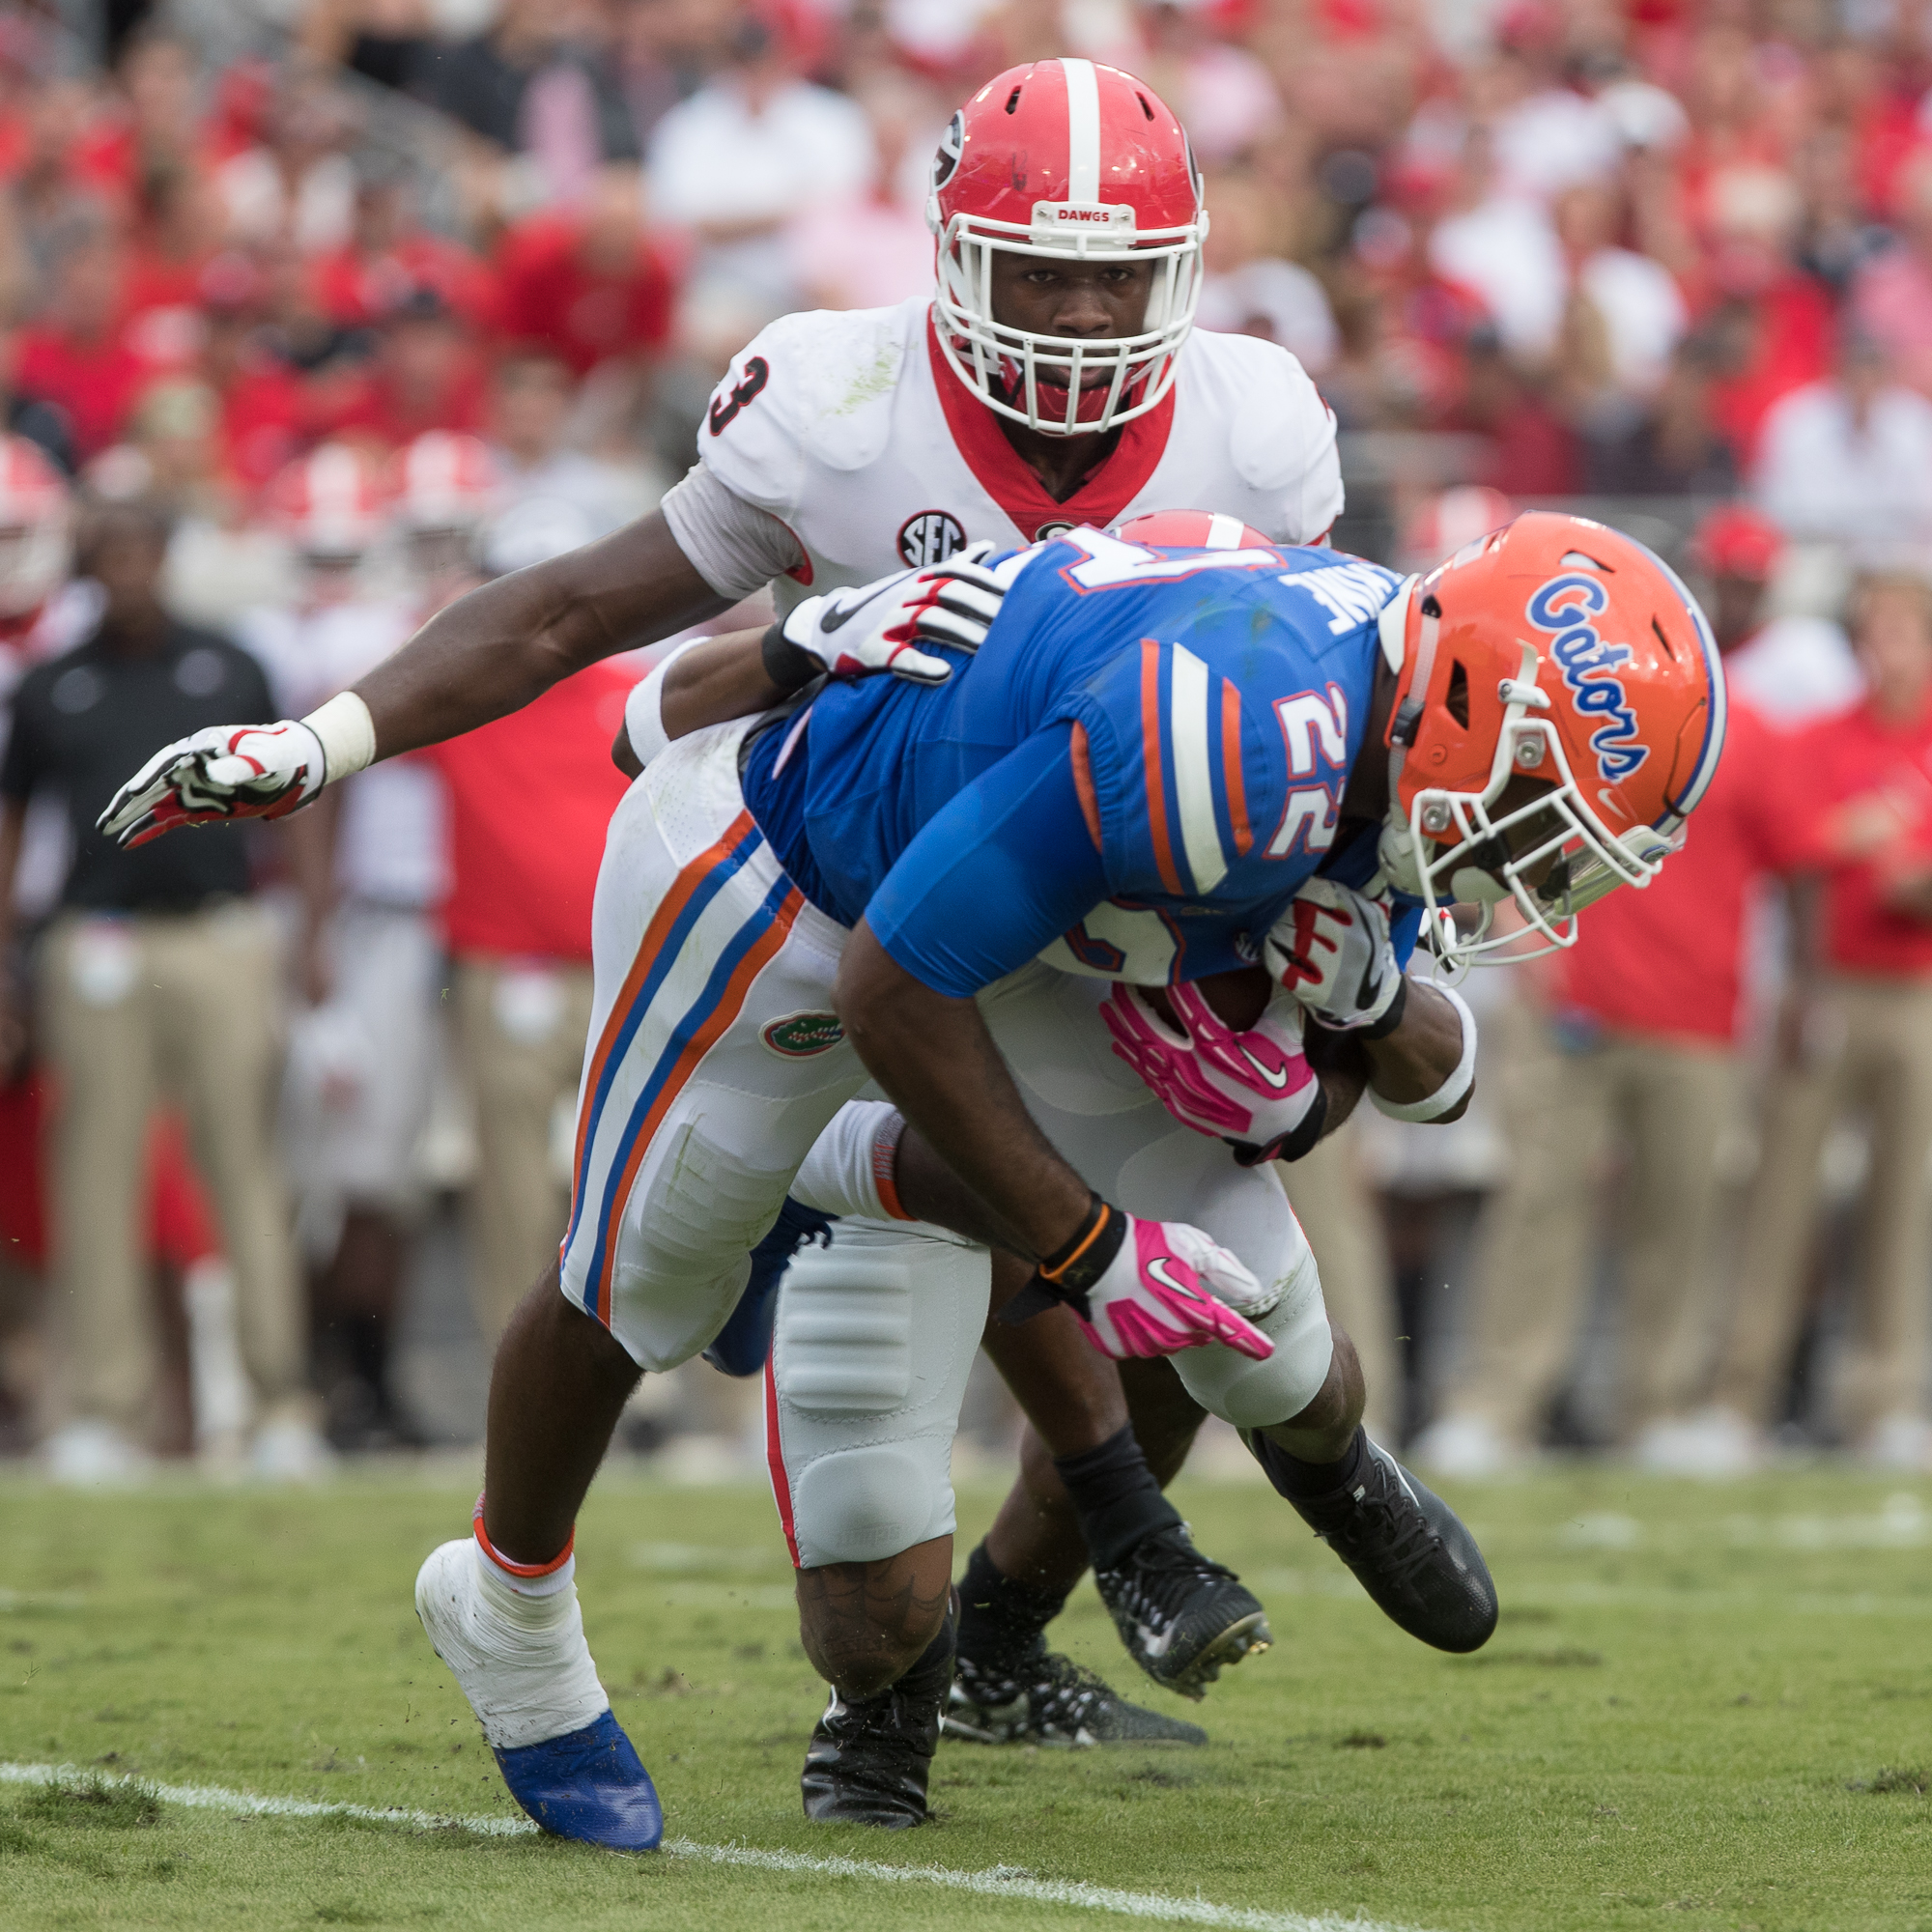 Lamical Perine had 93 yards rushing for Gators./STEVEN MUNCIE